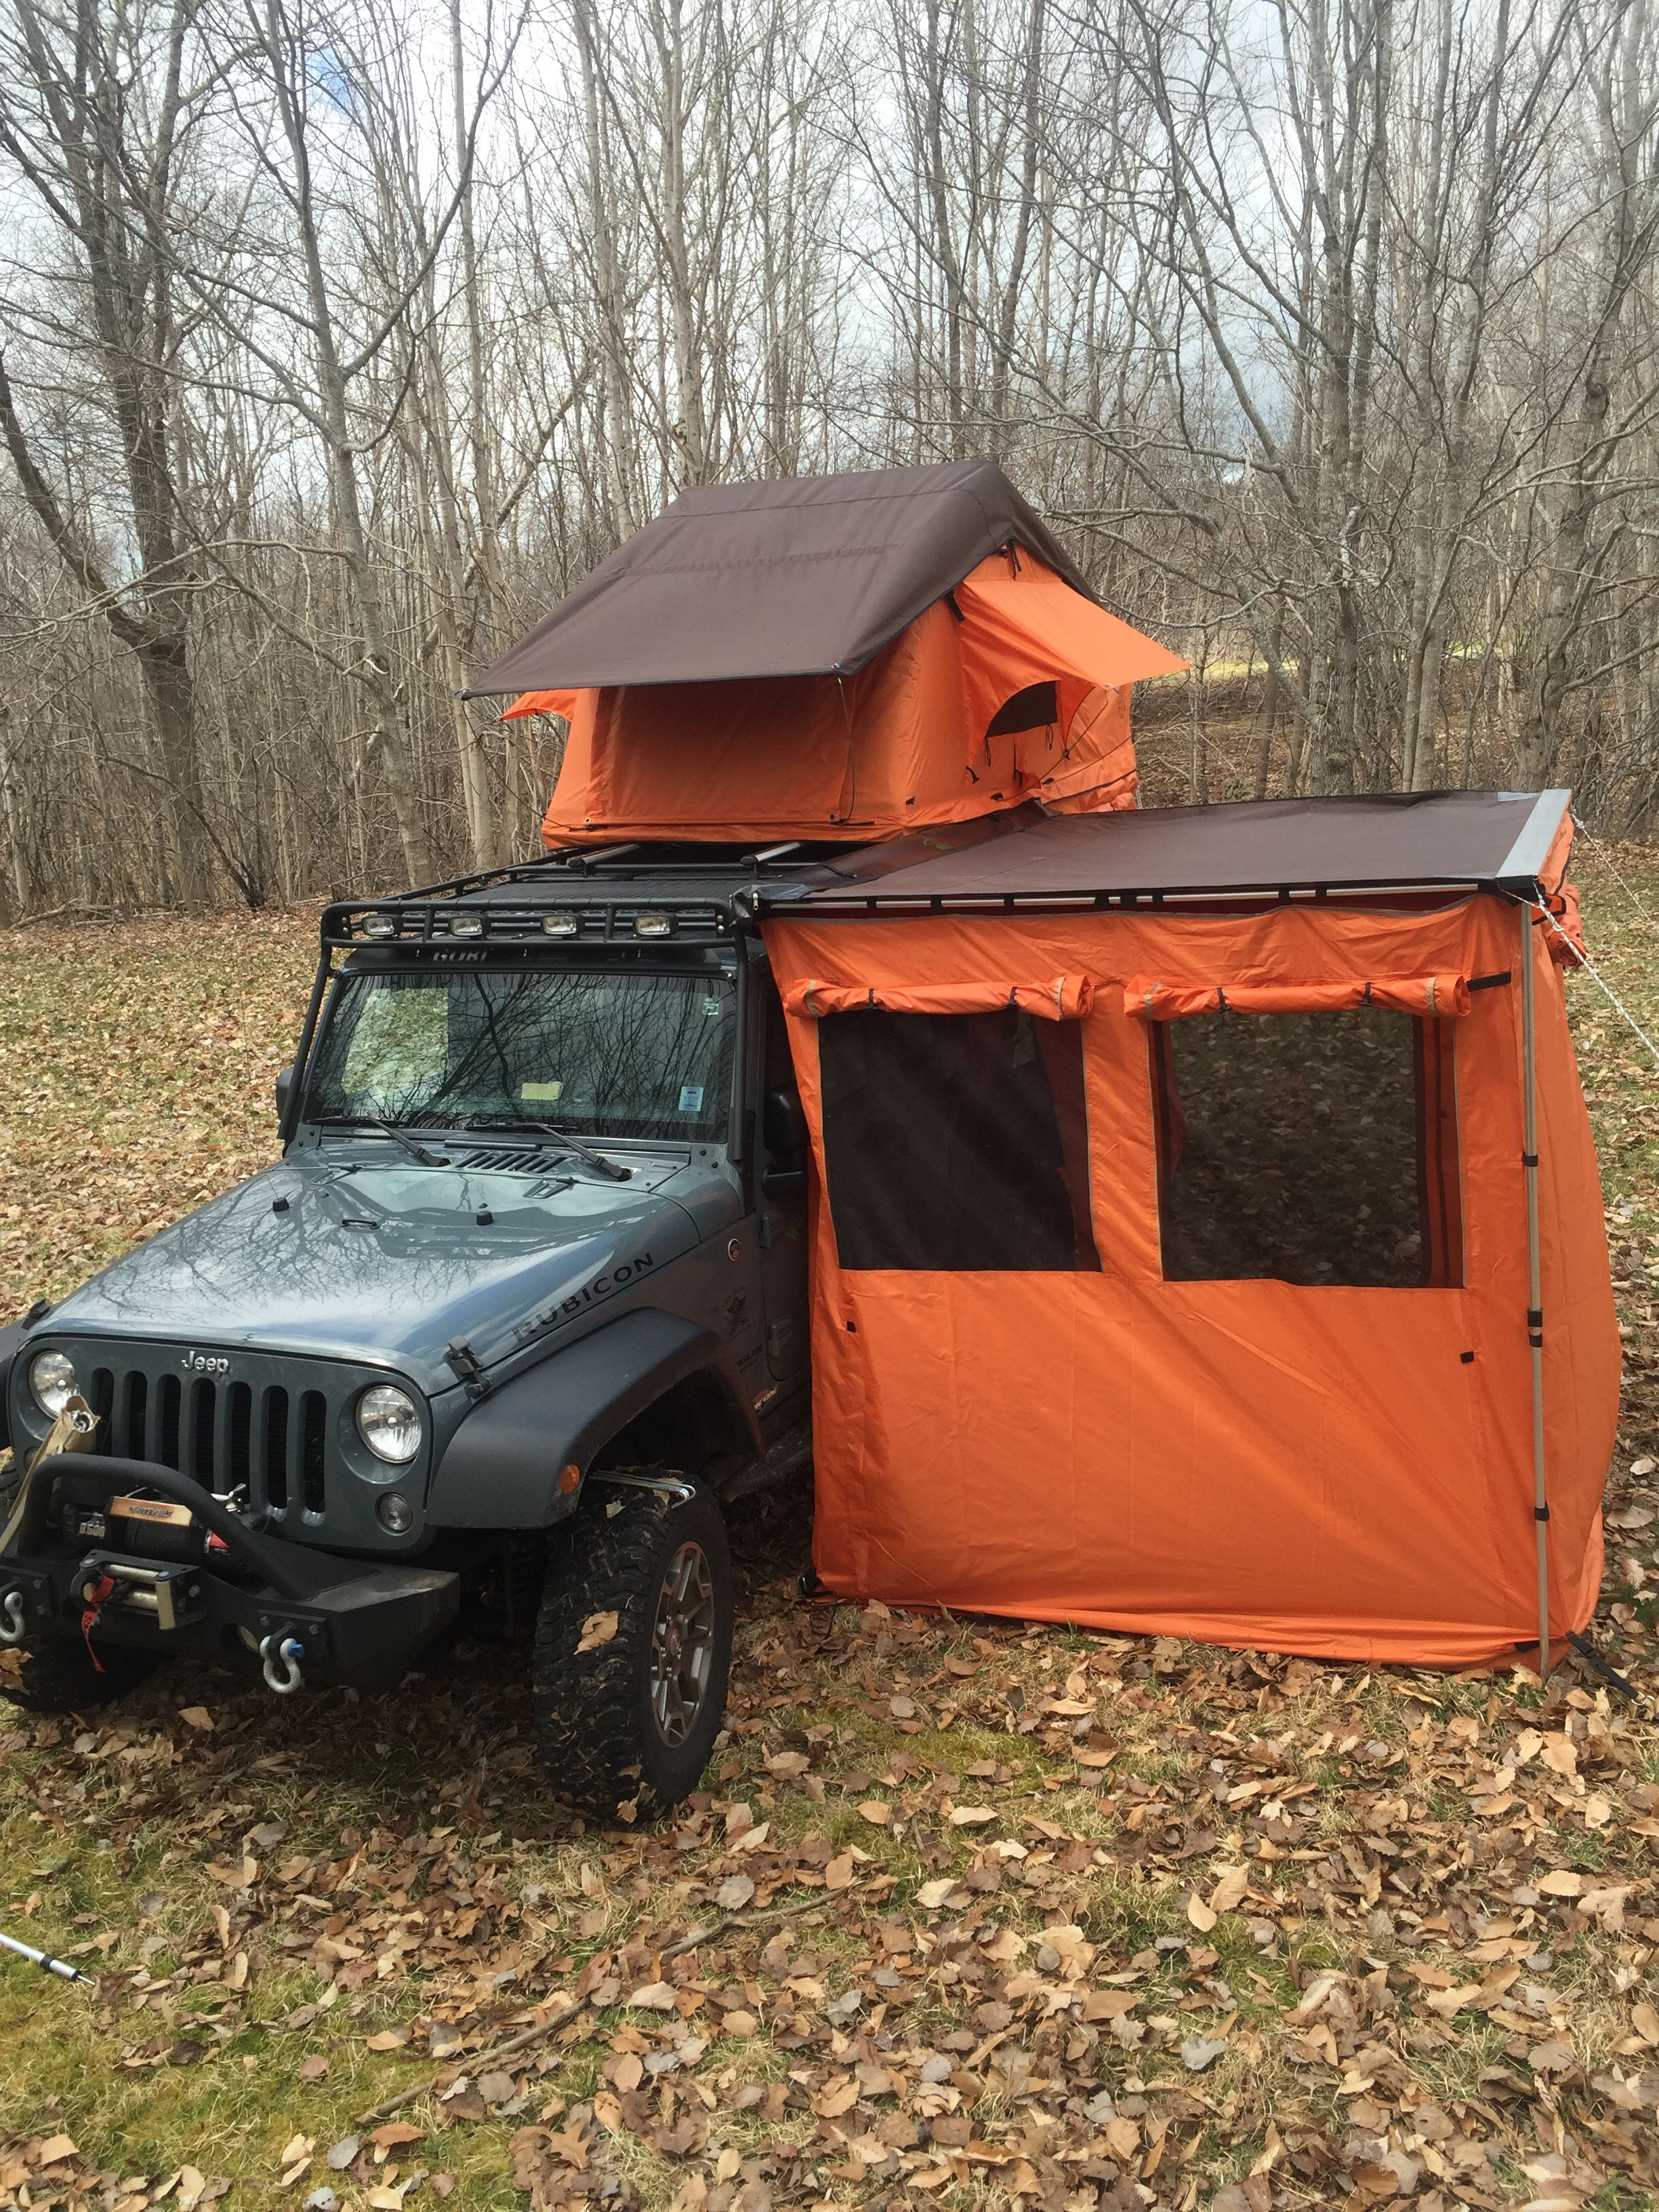 Firefly Roof Top Tent With The Awning And Awning Room